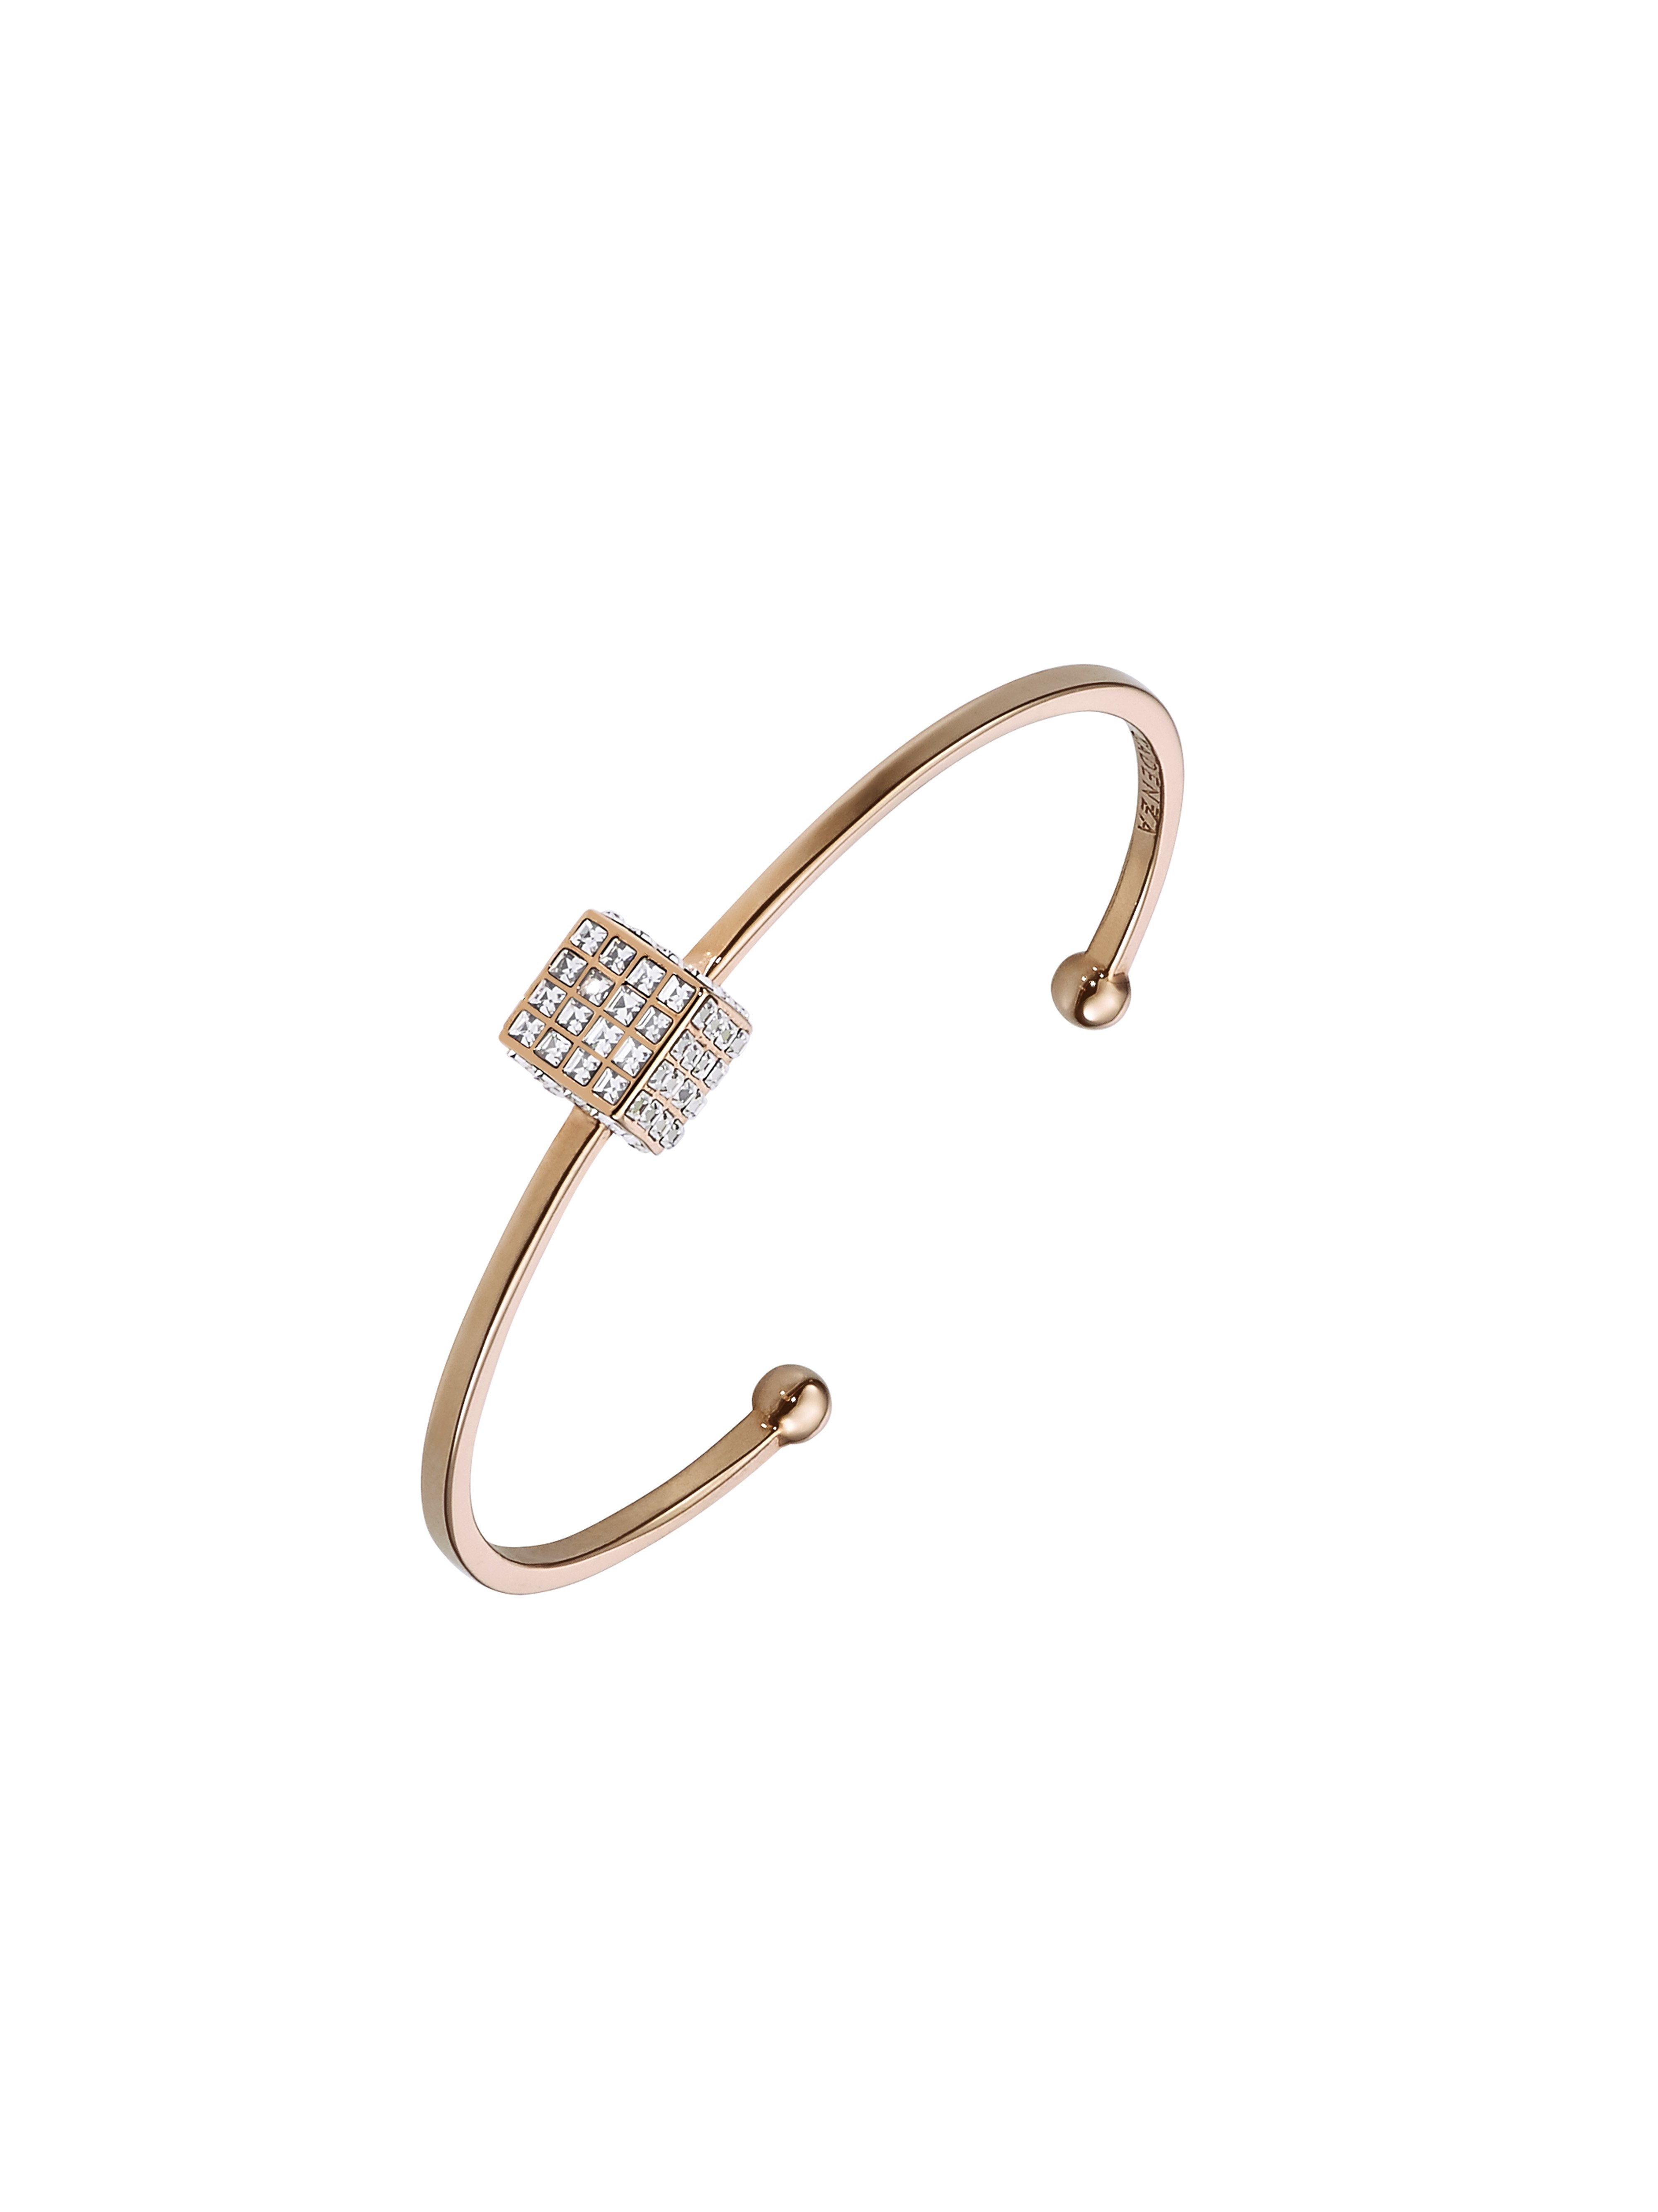 5281016_FW16_Cadenzza_Elementary_Cube_bangle_crystal_rose_gold_plated